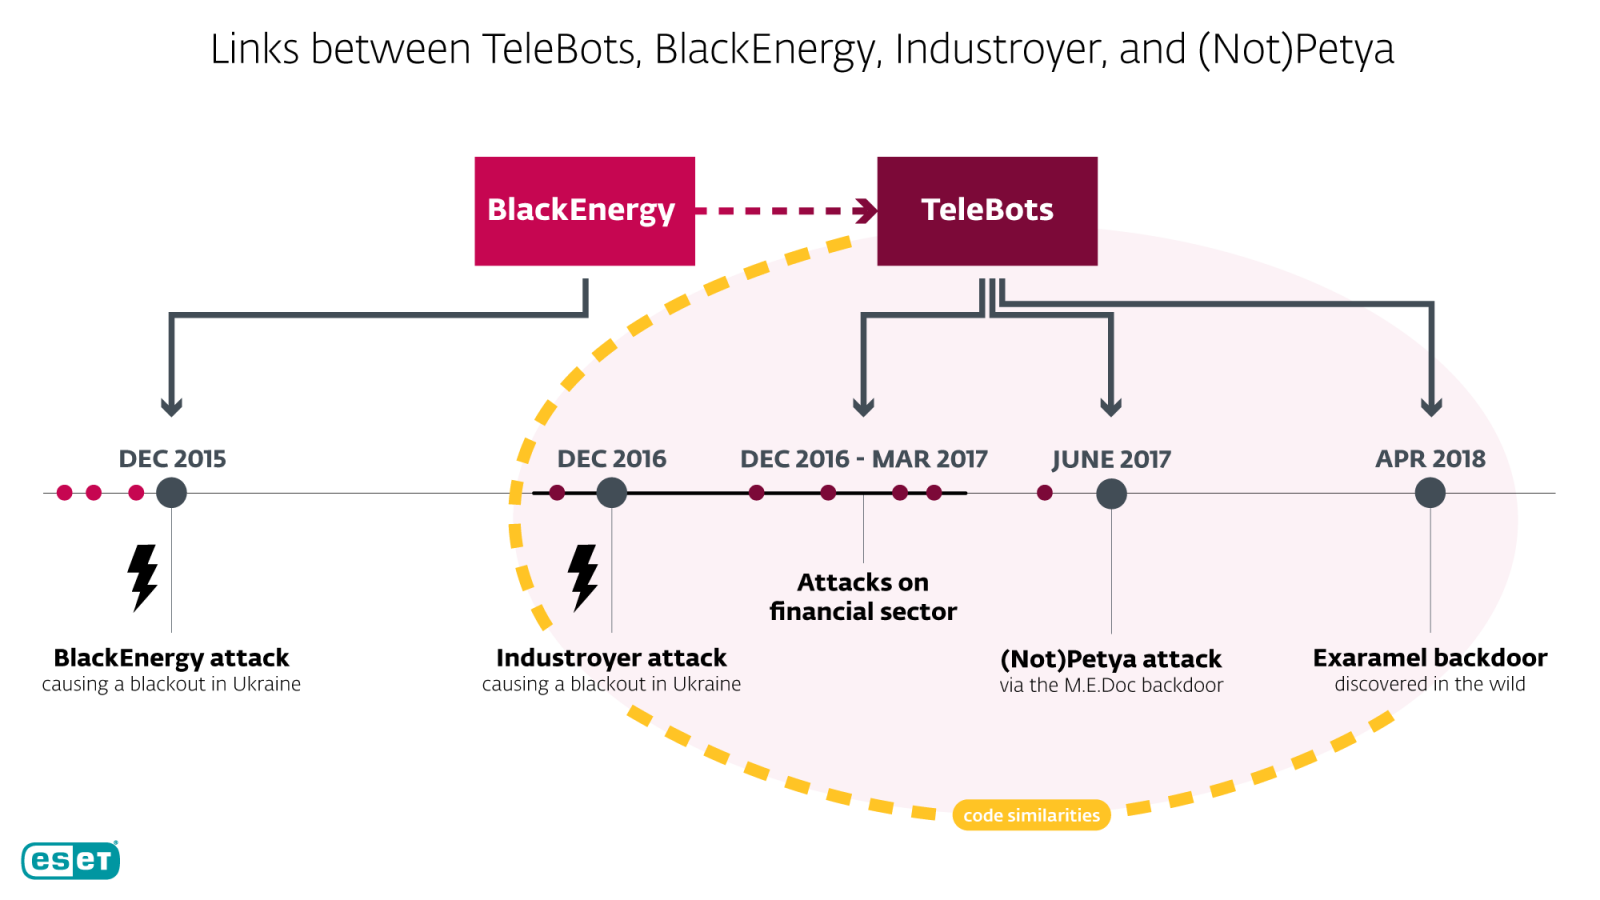 [Image: ESET_link_NotPetya_Industroyer-BlackEnergy.png]